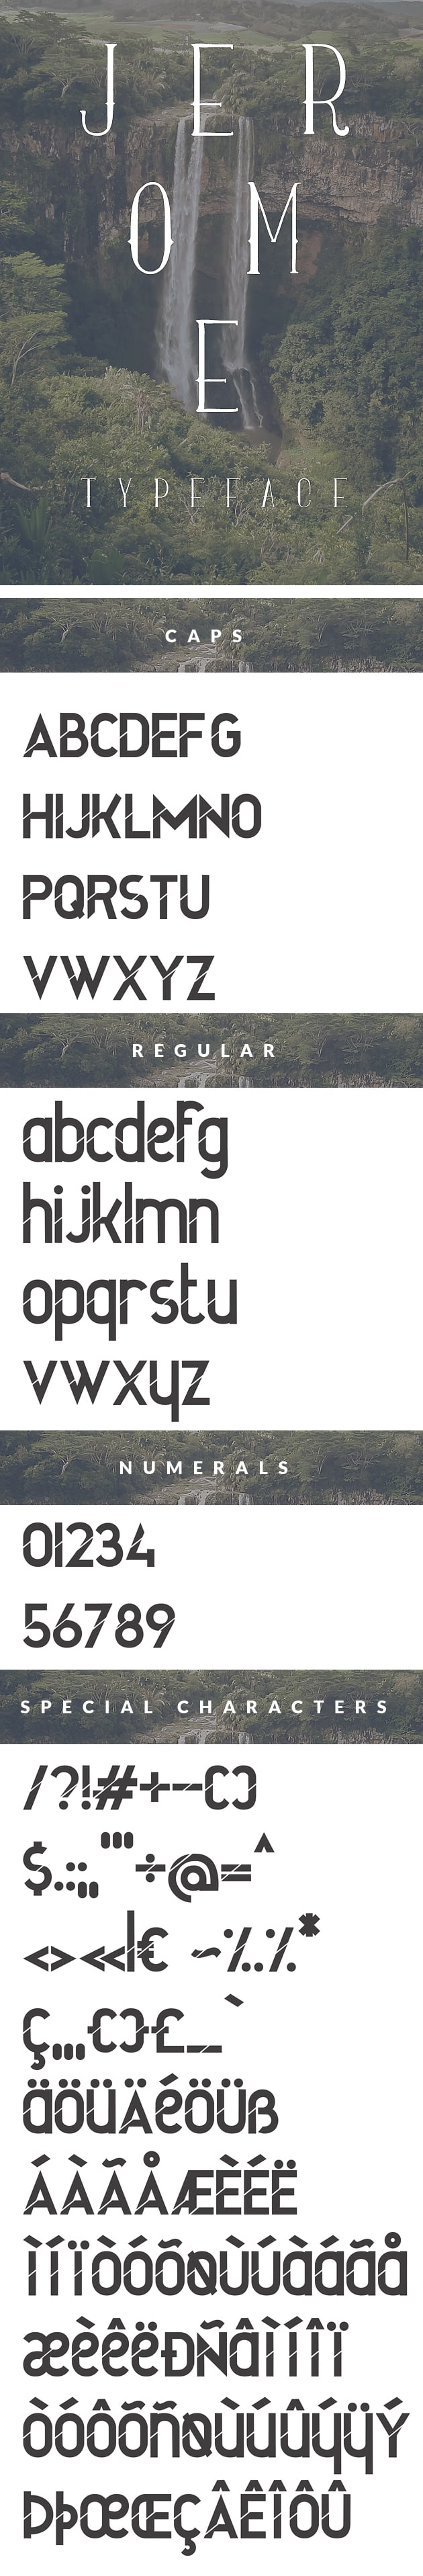 198 Fully Editable Typography Presets